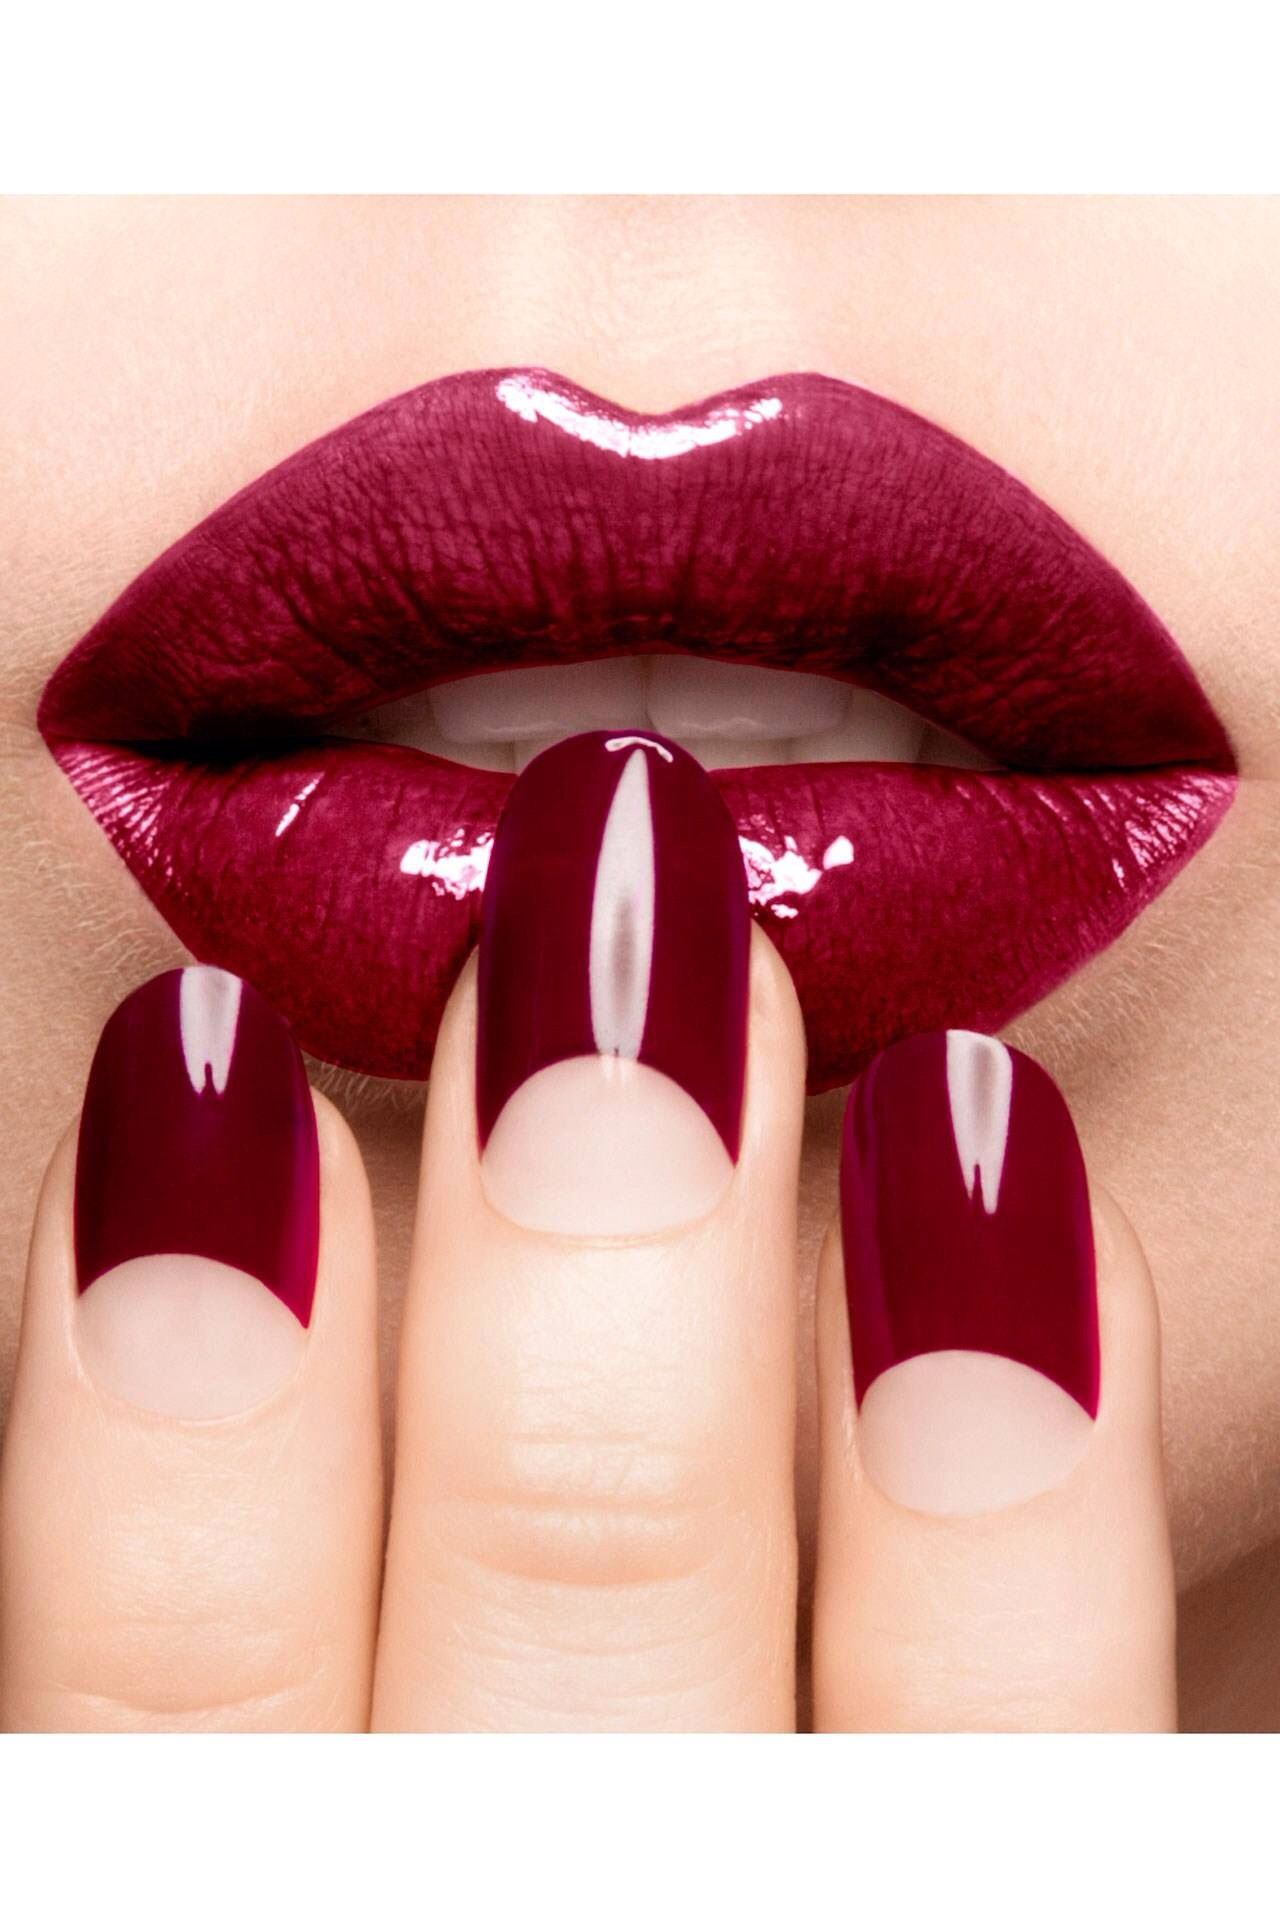 Red Lipstick Red Nails